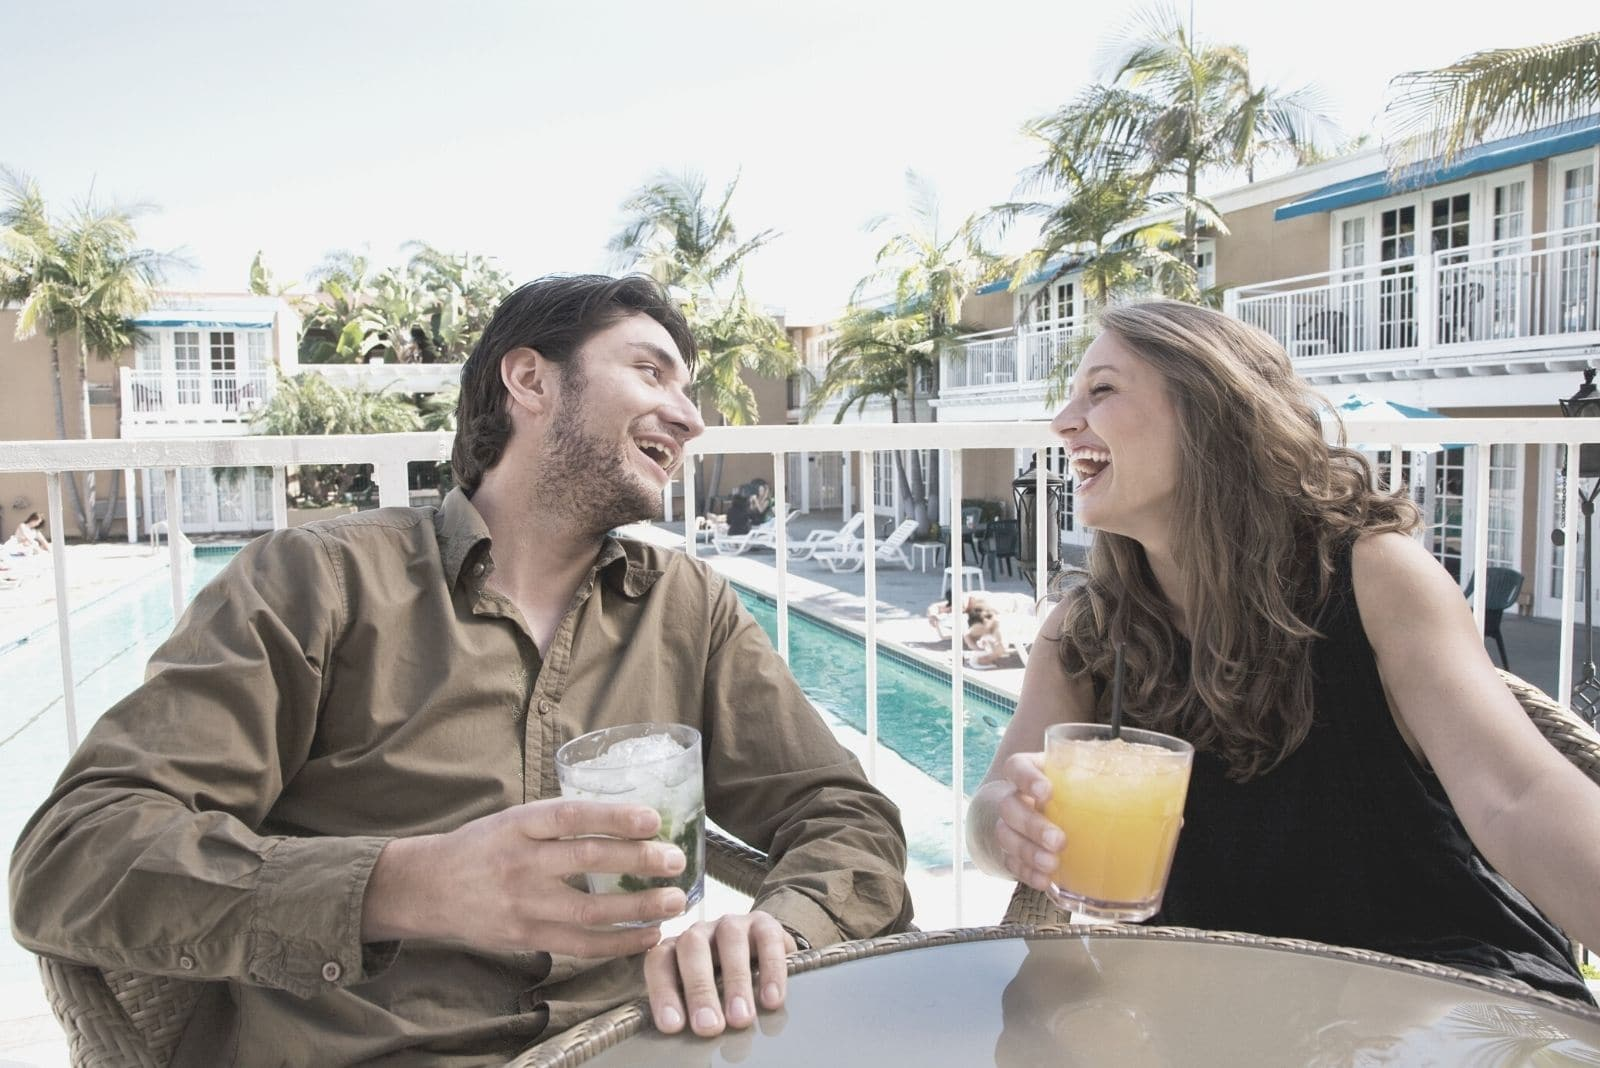 happy couple laughing enjoying each other at the side of the pool drinking beverage by the table